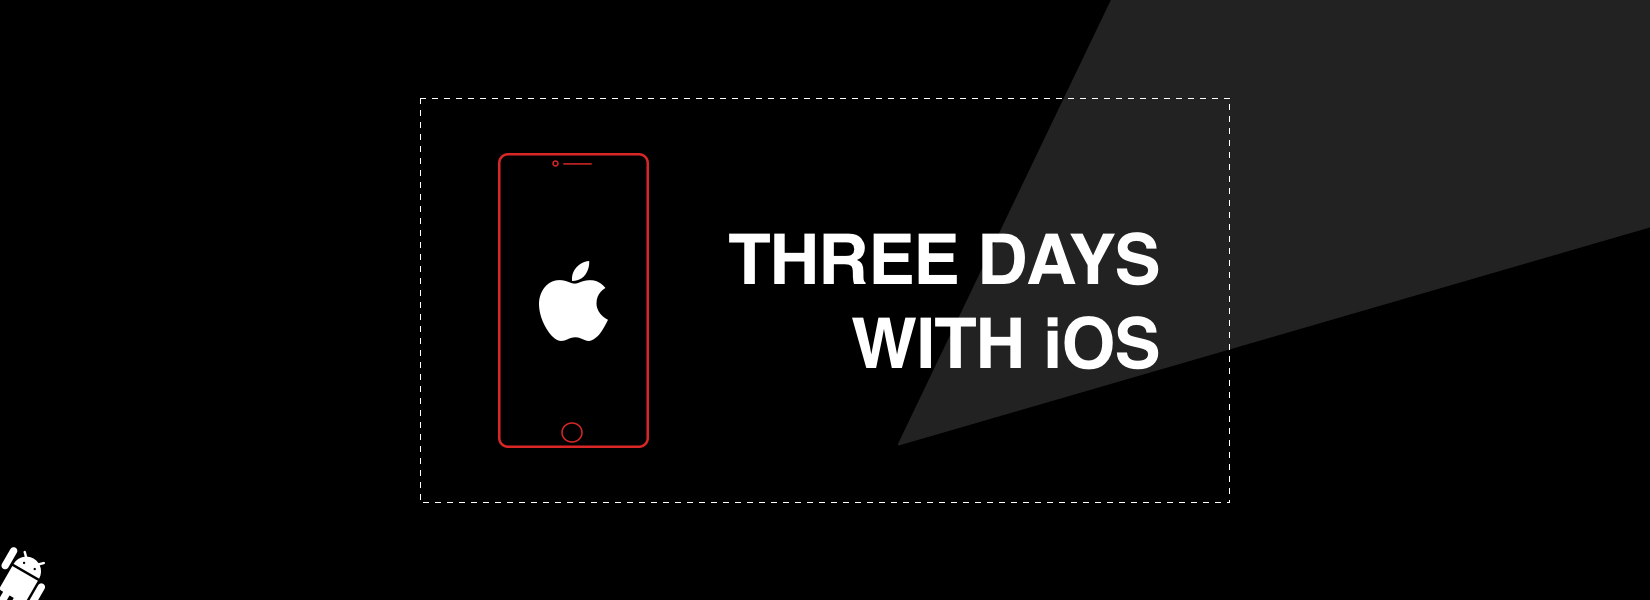 3 days with iOS - the Android user's perspective